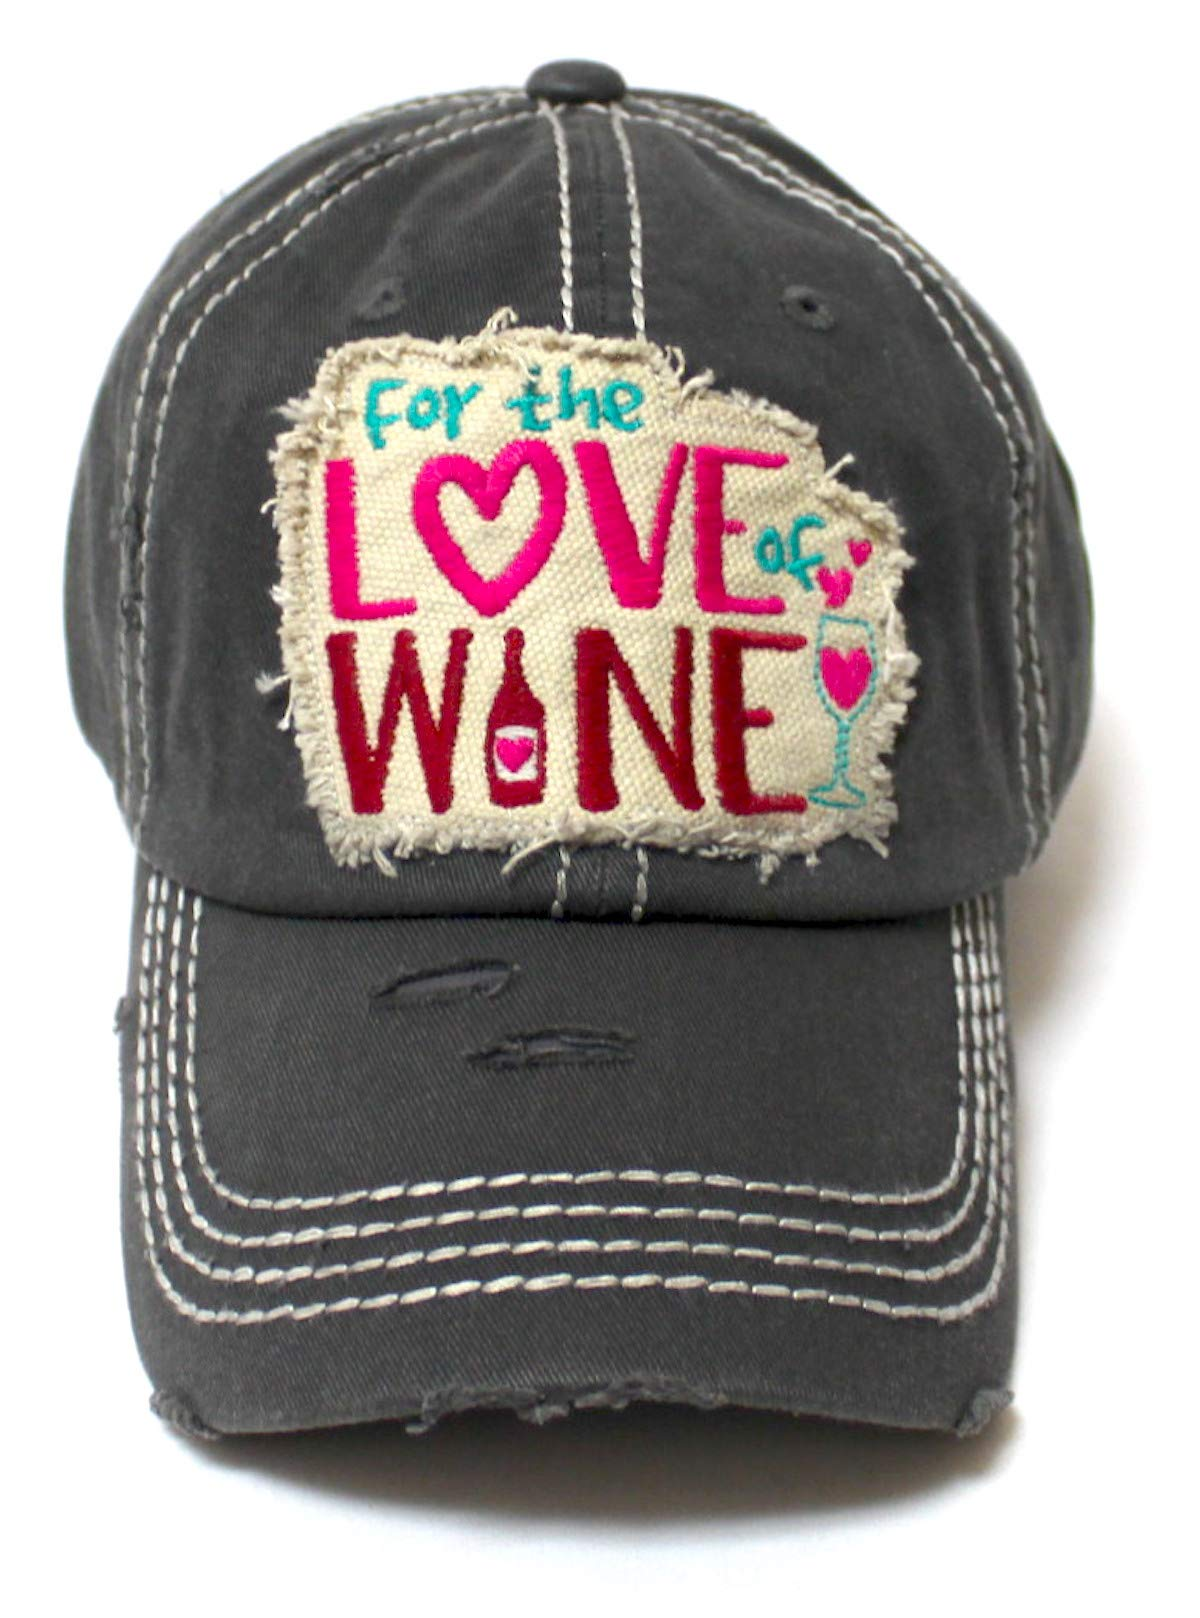 Women's Baseball Cap for The Love of Wine Patch Embroidery Hearts & Bubbles Monogram Hat, Vintage Black - Caps 'N Vintage